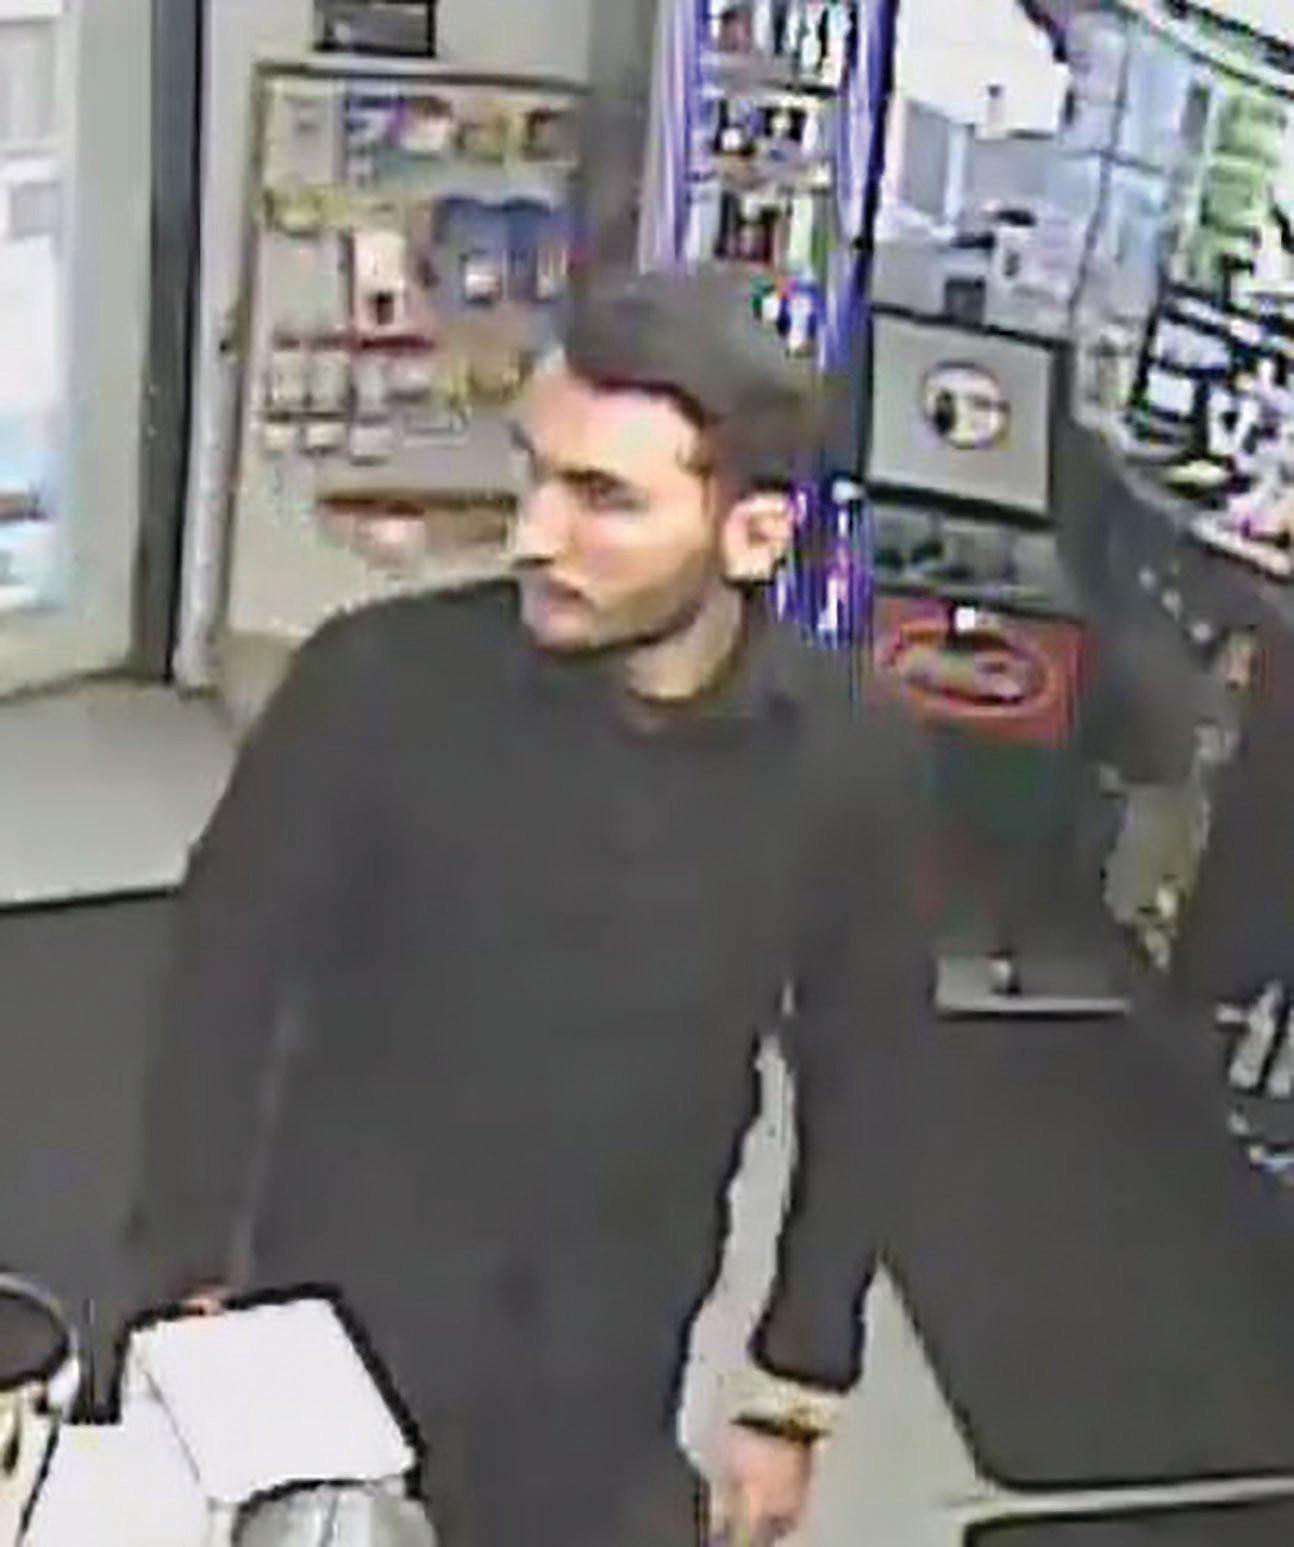 Photo provided by Franklin County Sheriff's Office  Seen in this photo taken from a gas station video is 22-year-old Michael A. Brown, who is wanted on a second-degree murder charge.